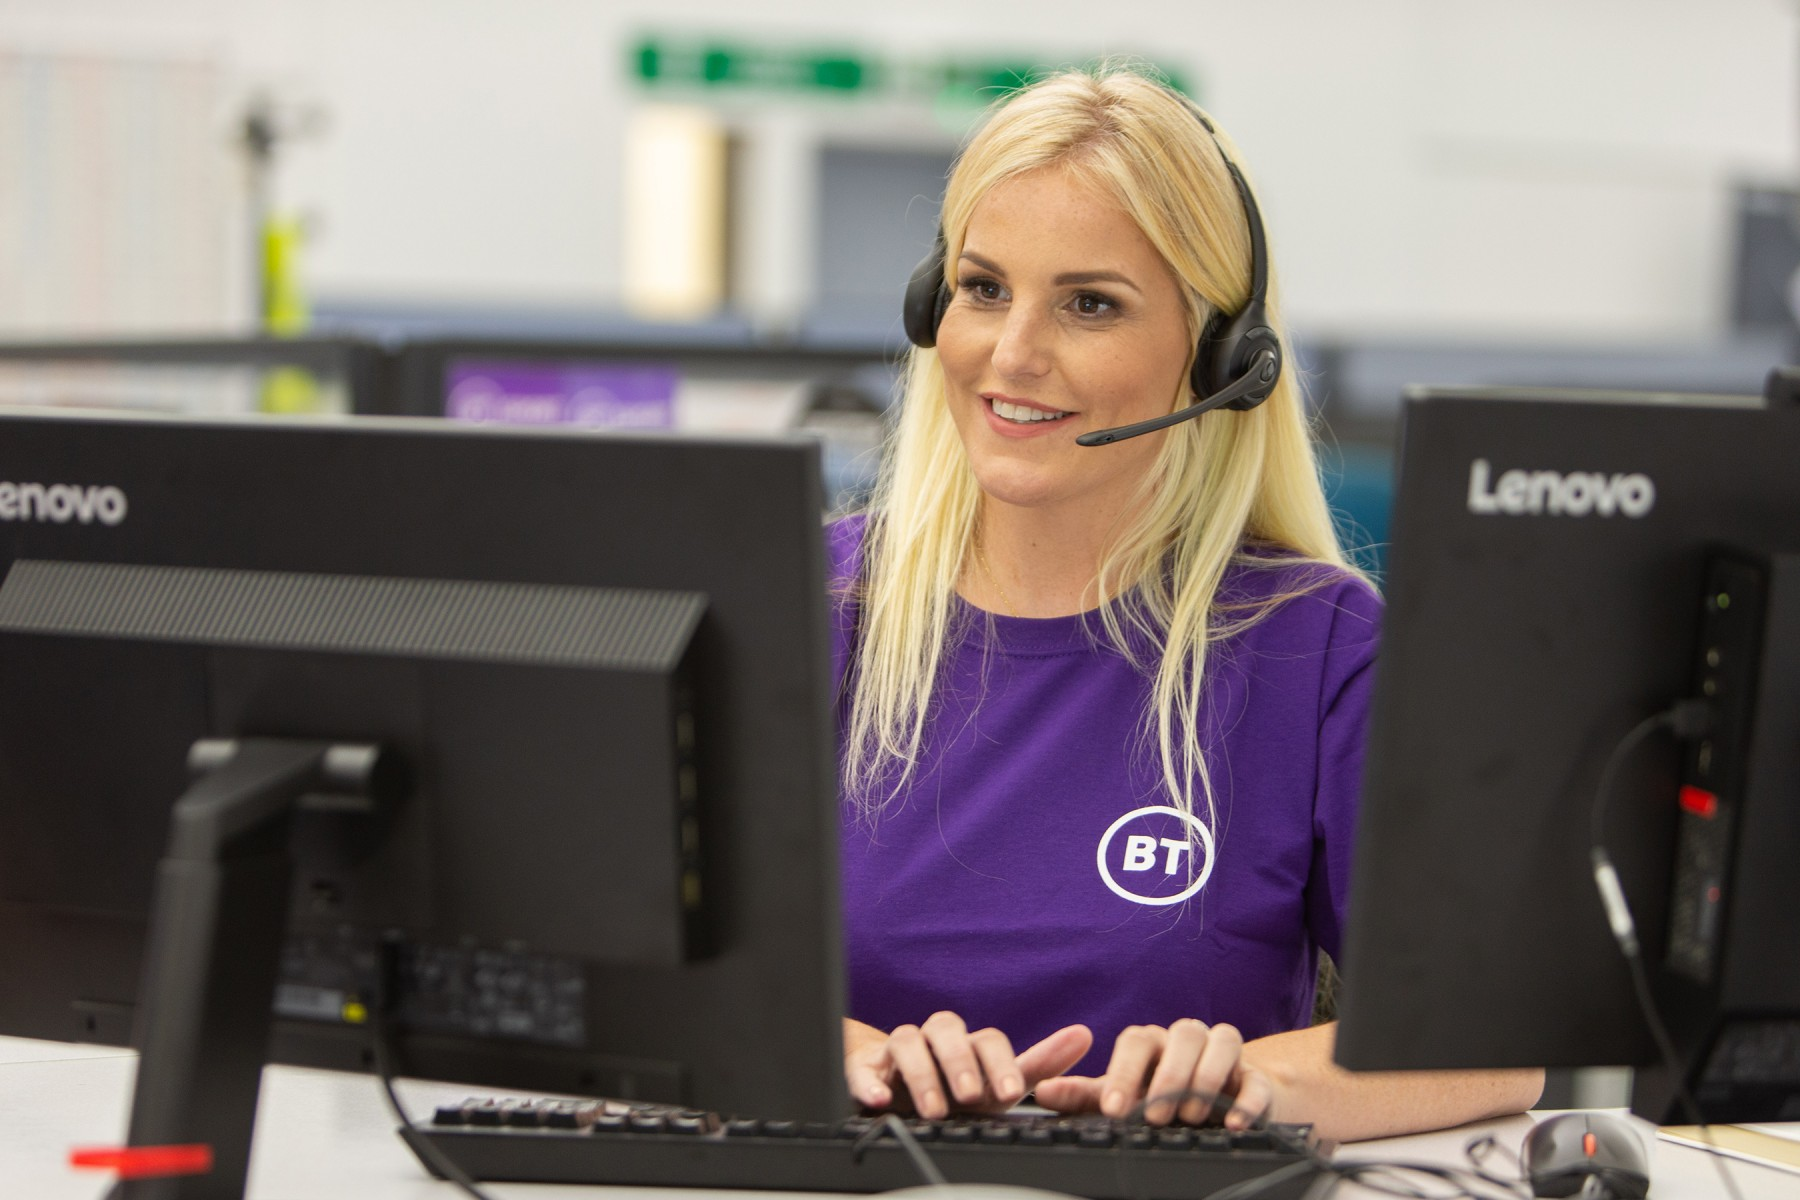 Newcastle call centre